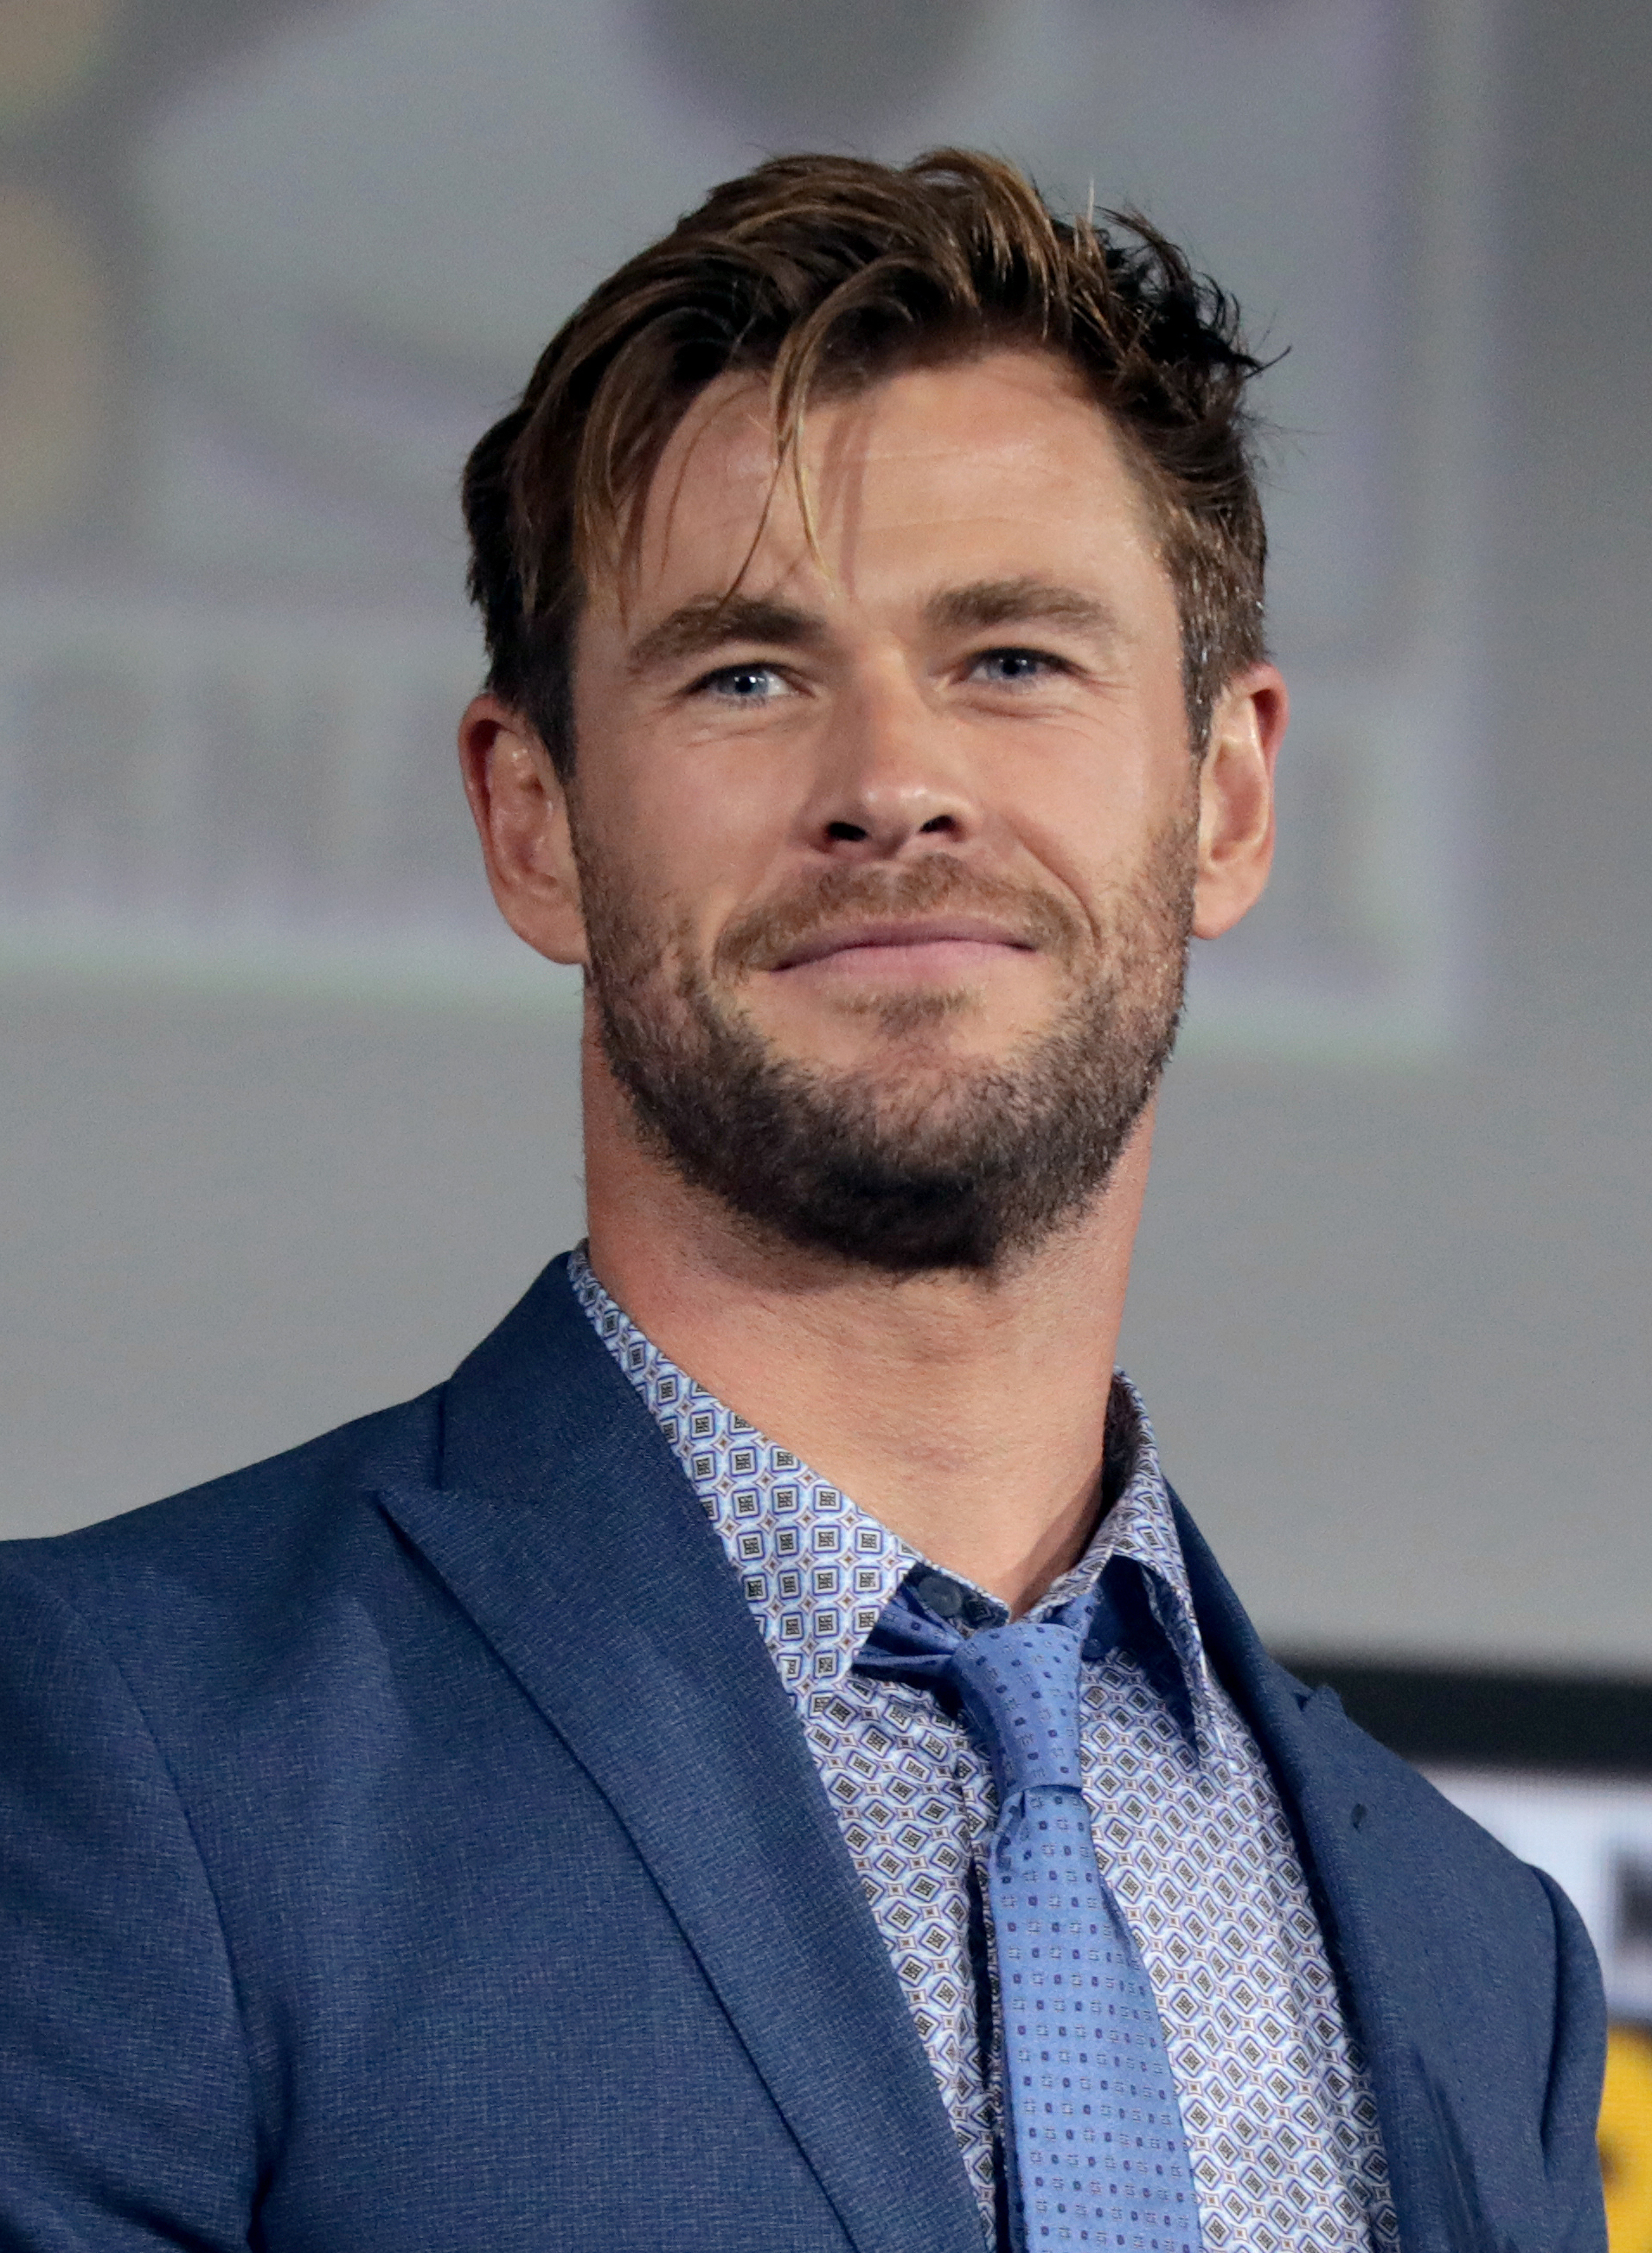 Chris Hemsworth Wikipedia